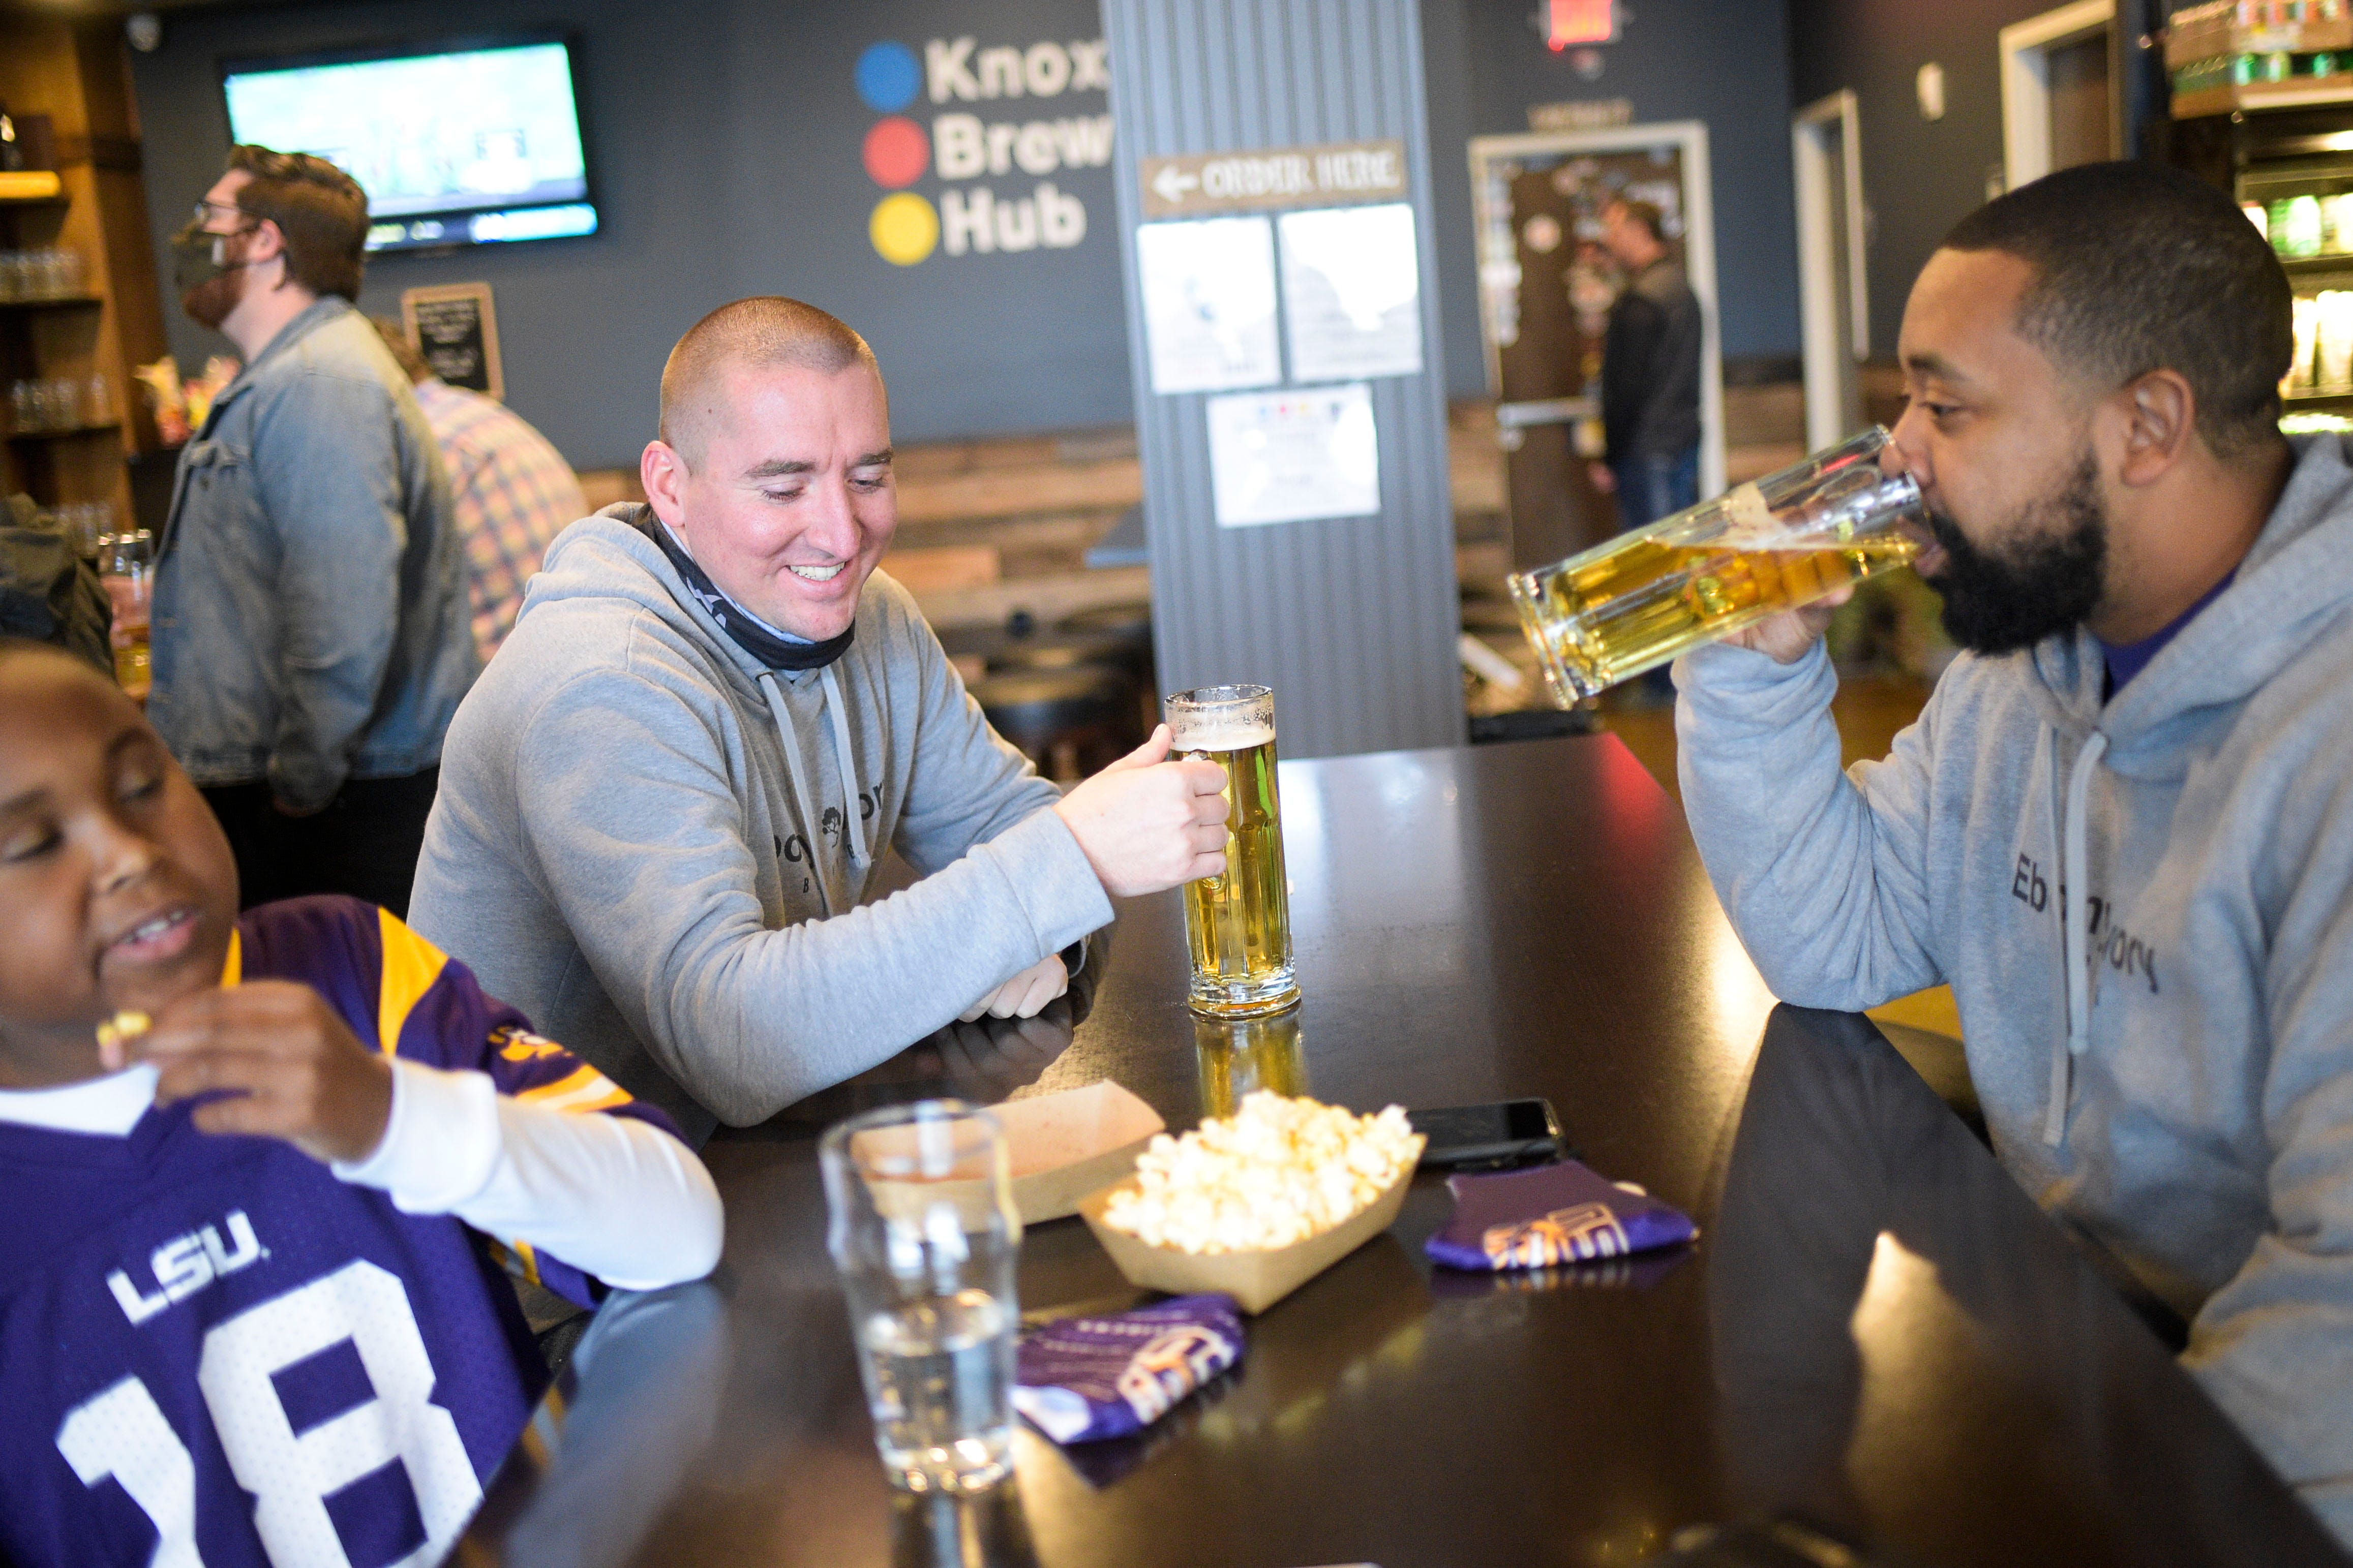 From left, Quincy Dupas, Mitchell Russell and Chico Dupas drink beer and eat popcorn at Knox Brew Hub in downtown Knoxville, Tenn. on Saturday, Feb. 13, 2021.